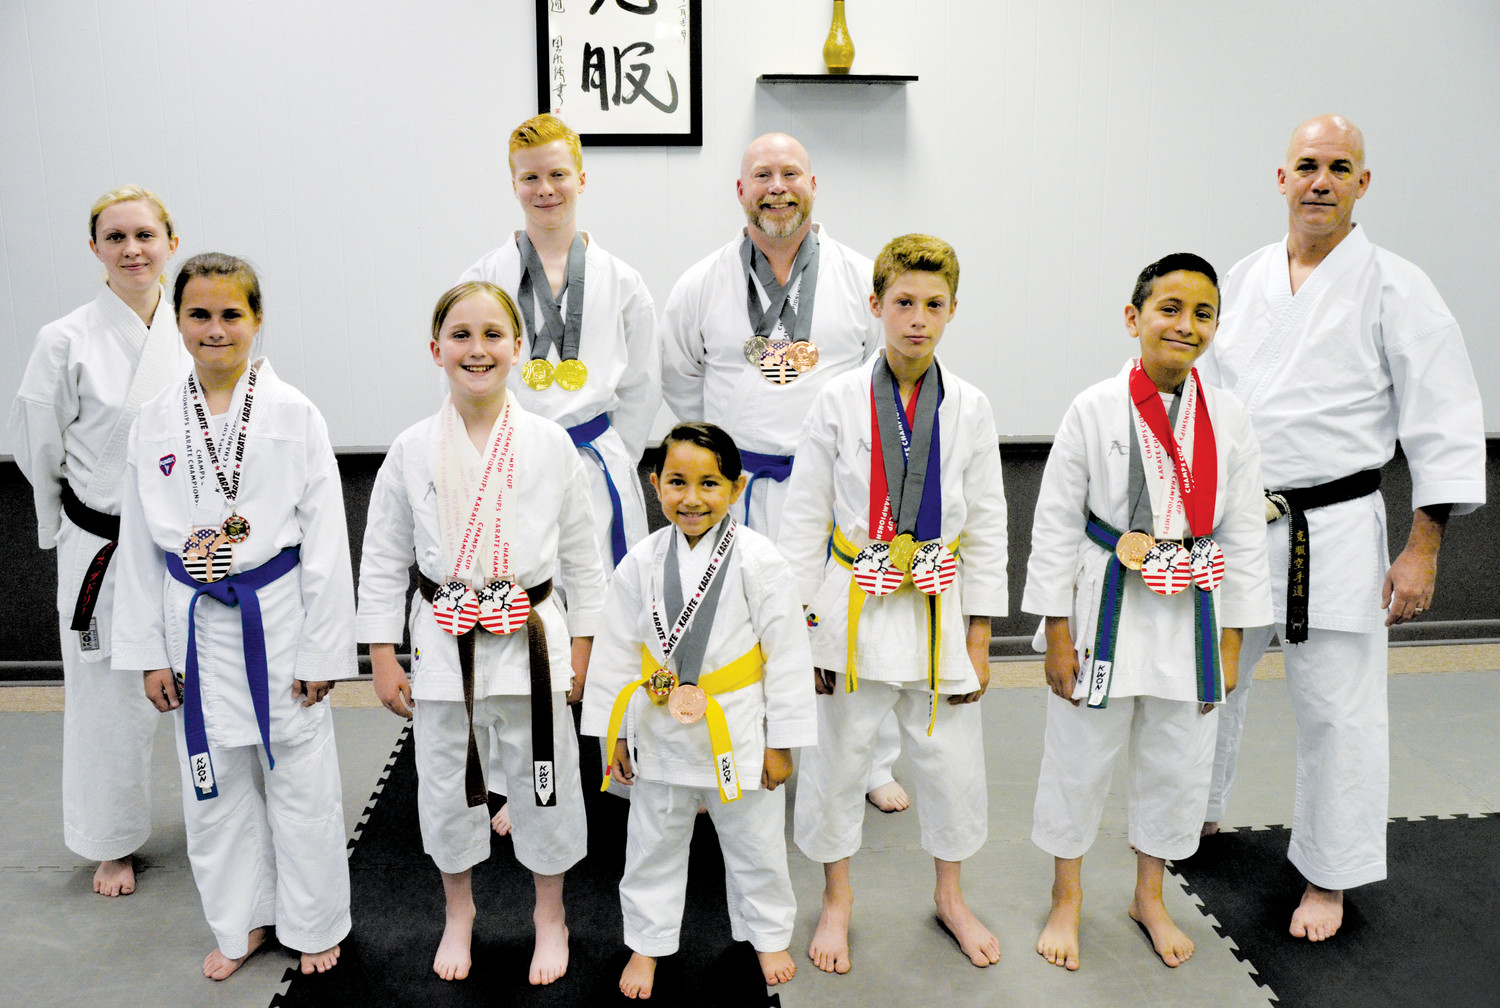 Back row, from left, Faith Dudley, Christian Smith, Brian Kesling and Charles Burrows. Front row, from left, are Virginia Harding, Barrett Kesling, Giselle Jacobs, Garen Odum and Kaled Garcia. The competitive team of Kokufuku School of Martial Arts won 16 medals at two recent regional tournaments in Greenville, S.C. and Douglasville, Ga.